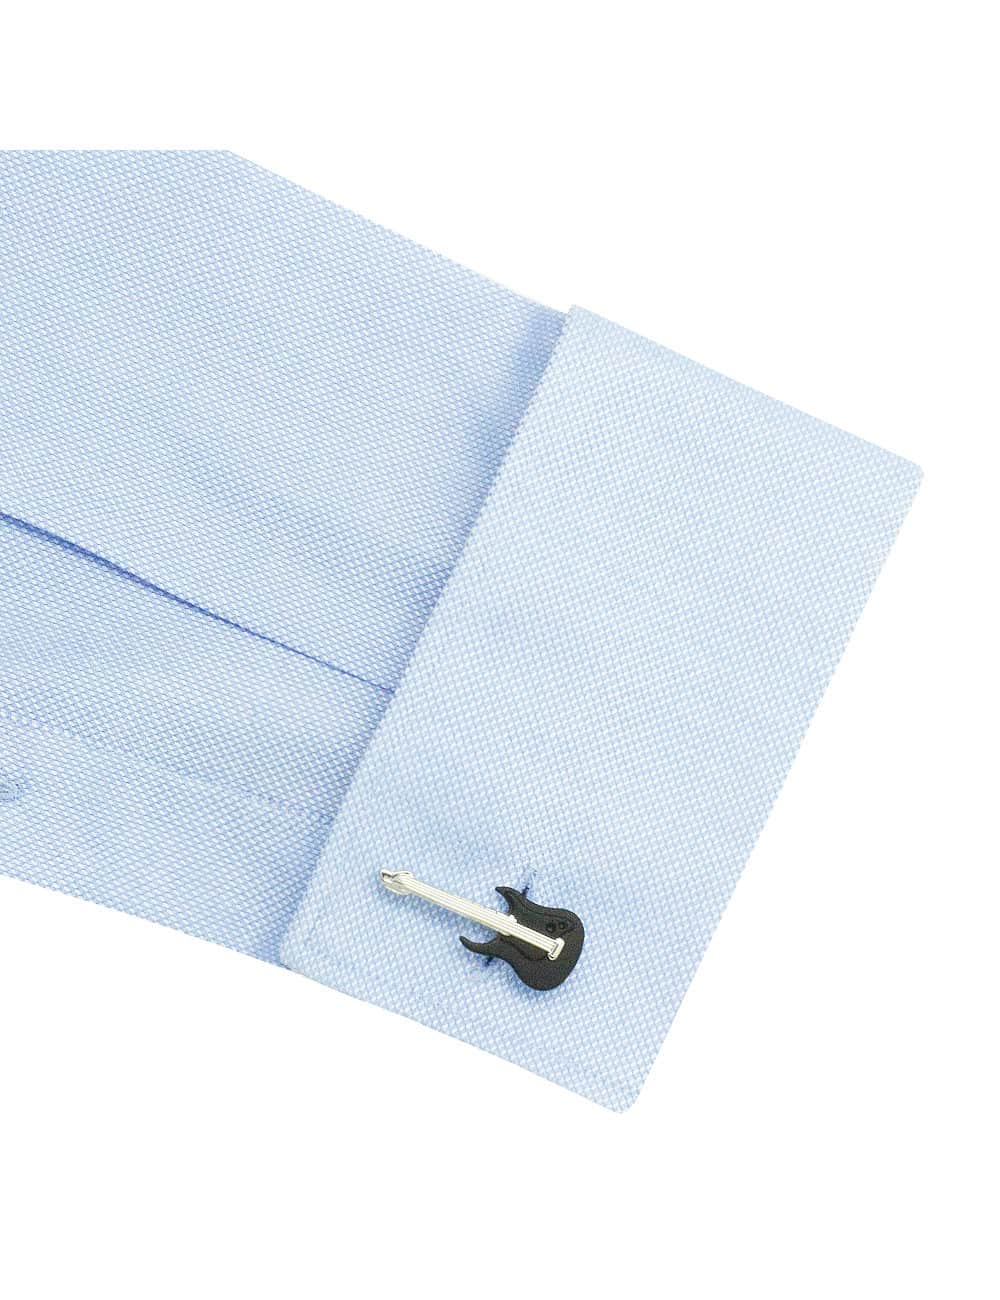 TF Solid Blue Dobby 100% Premium Cotton Easy Iron Double-Ply Long Sleeve Double Cuff Shirt TF3D1.16